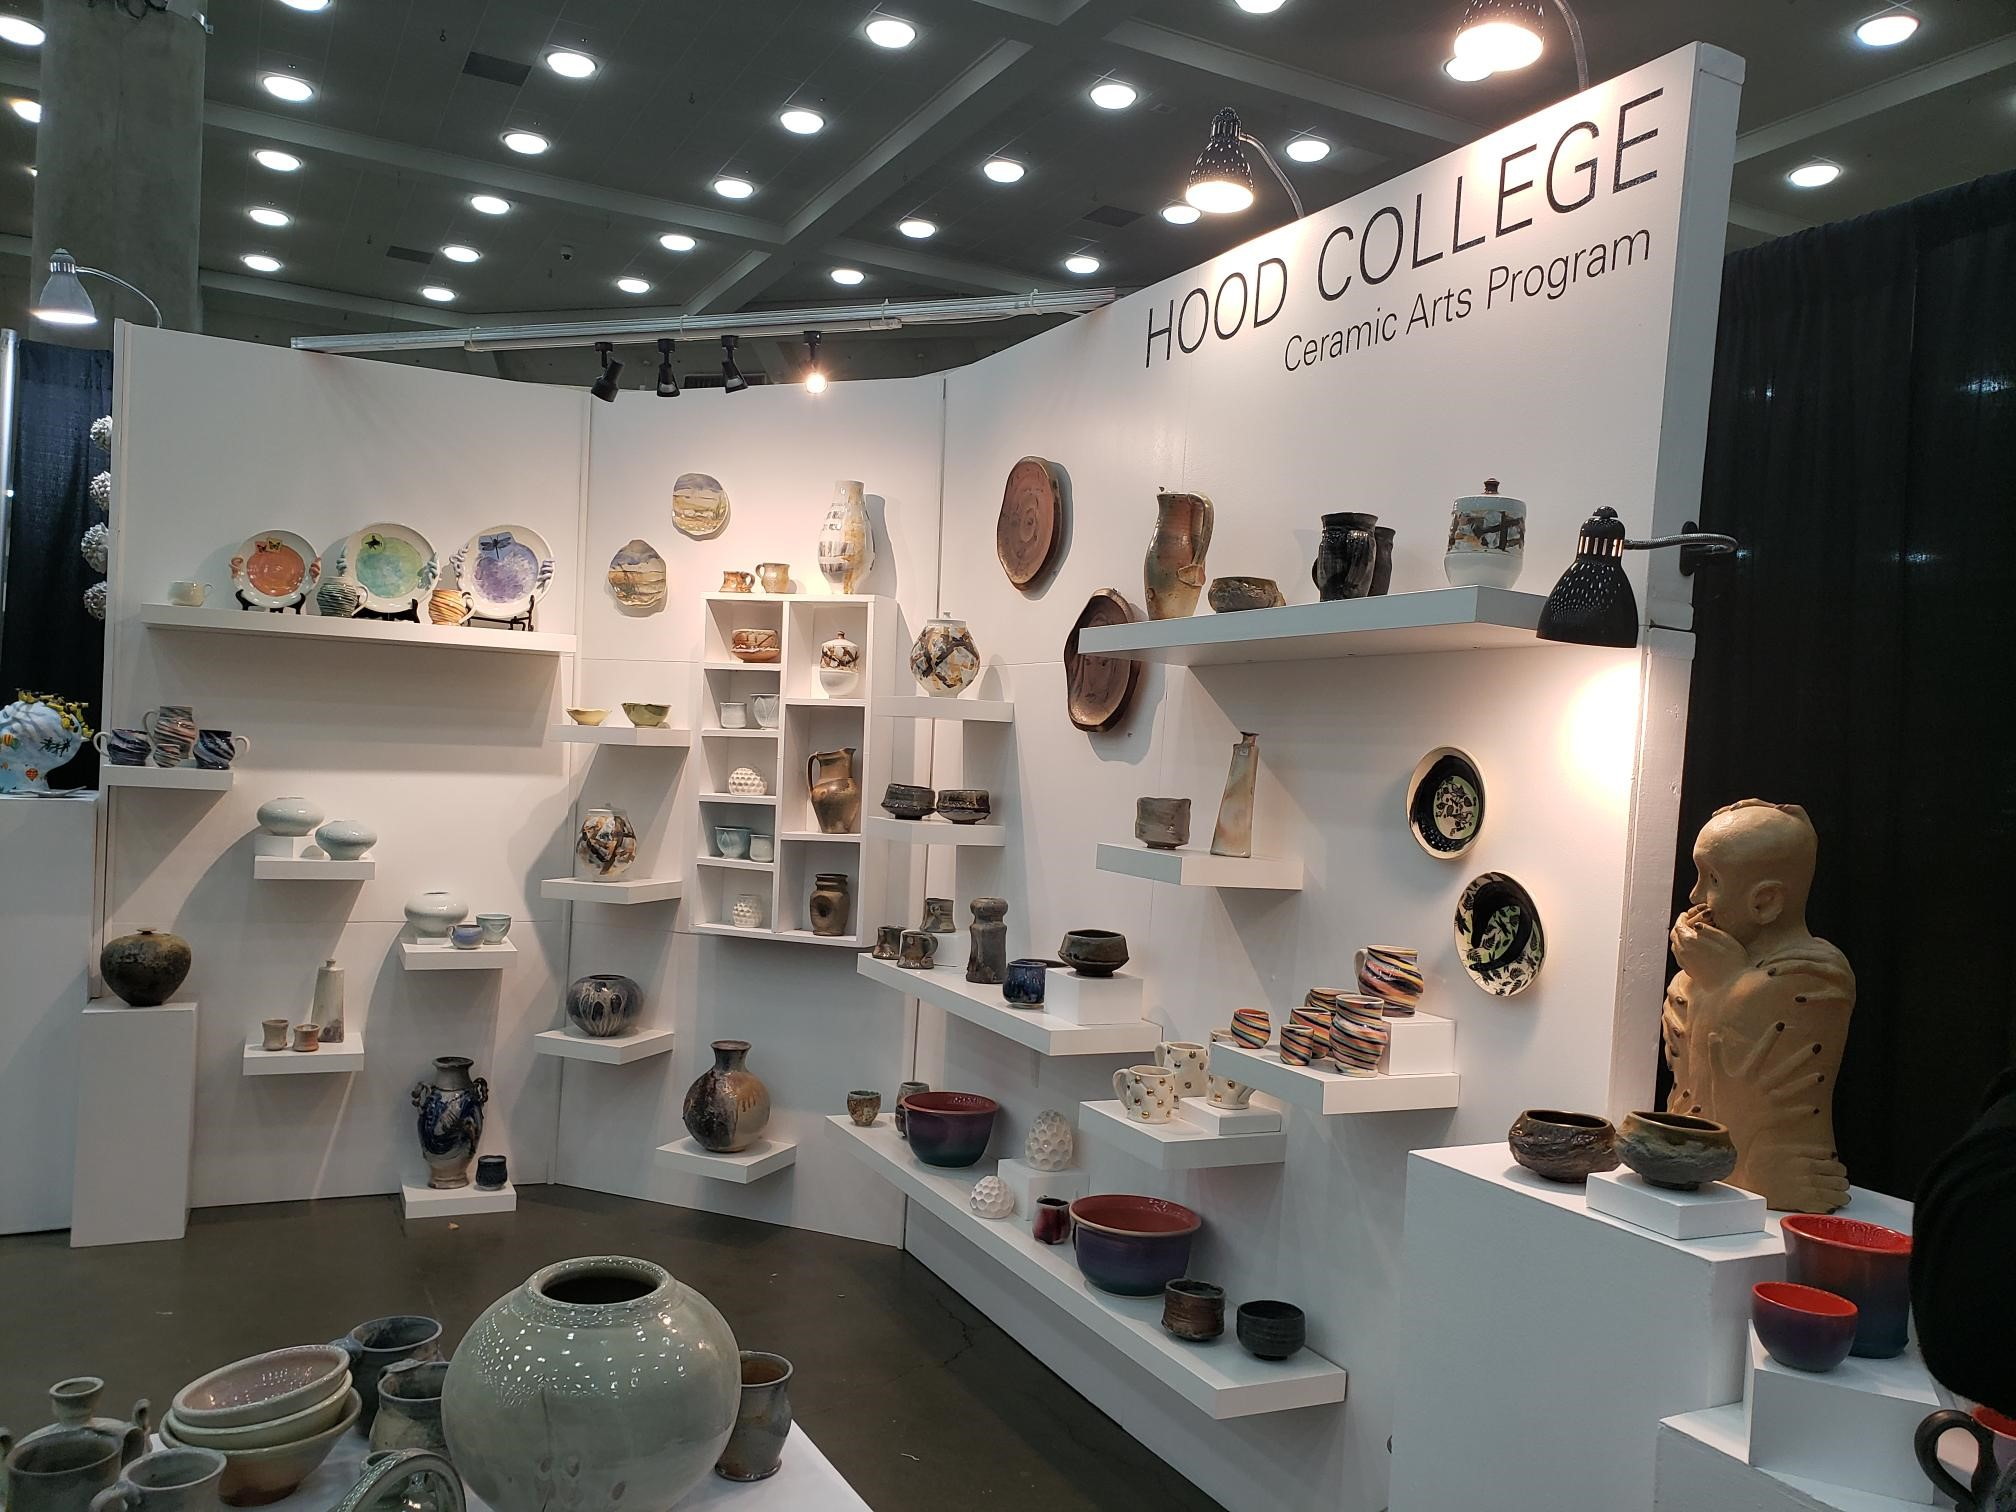 Hood College Ceramic Arts Exhibit at the 2019 American Craft Council Show